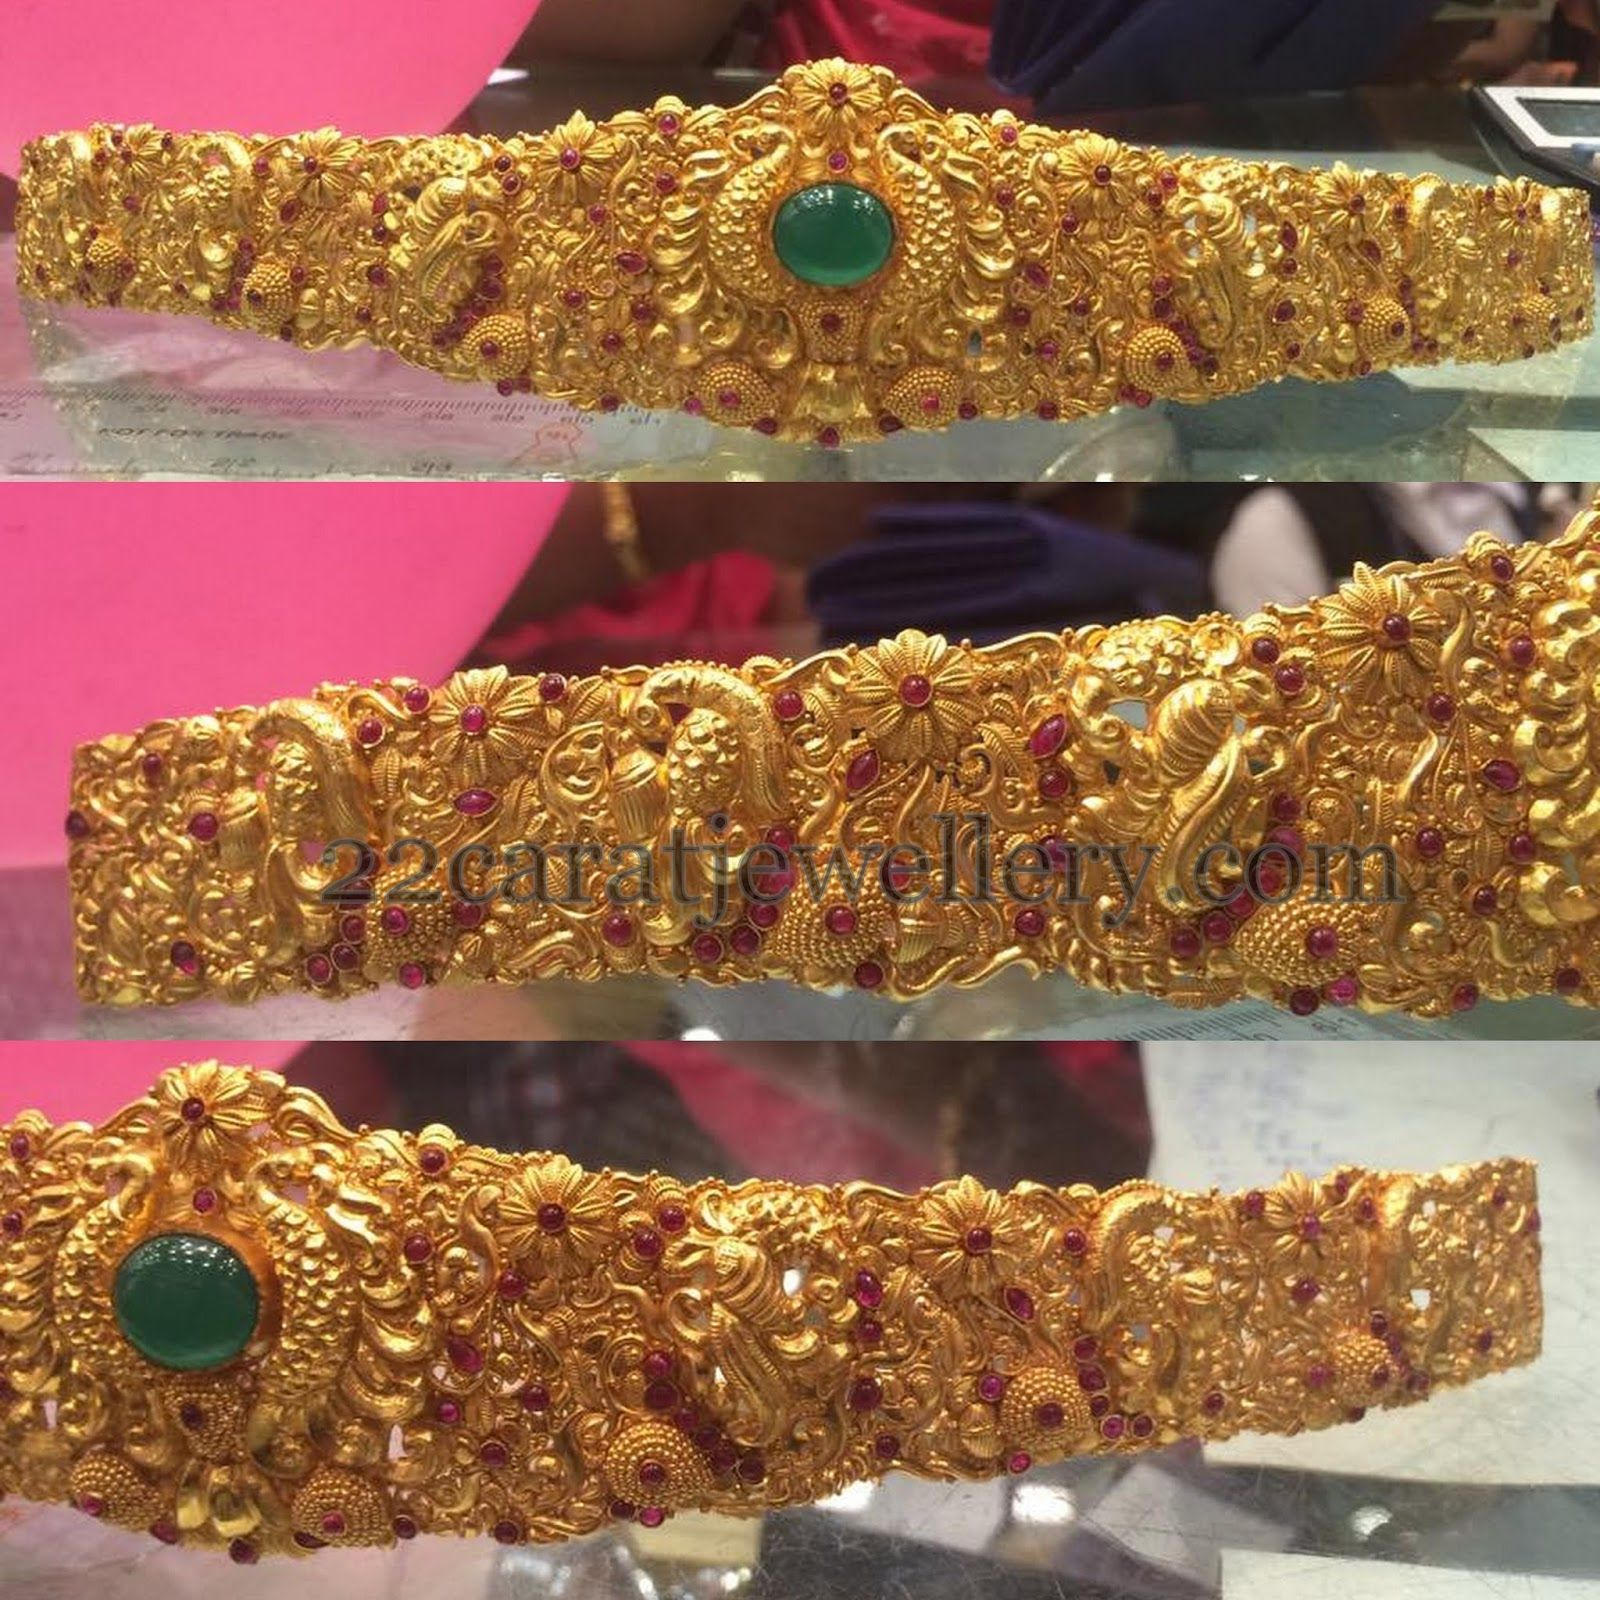 Gold vaddanam oddiyanam kammarpatta waisbelt designs south indian - Latest Collection Of Best Indian Jewellery Designs